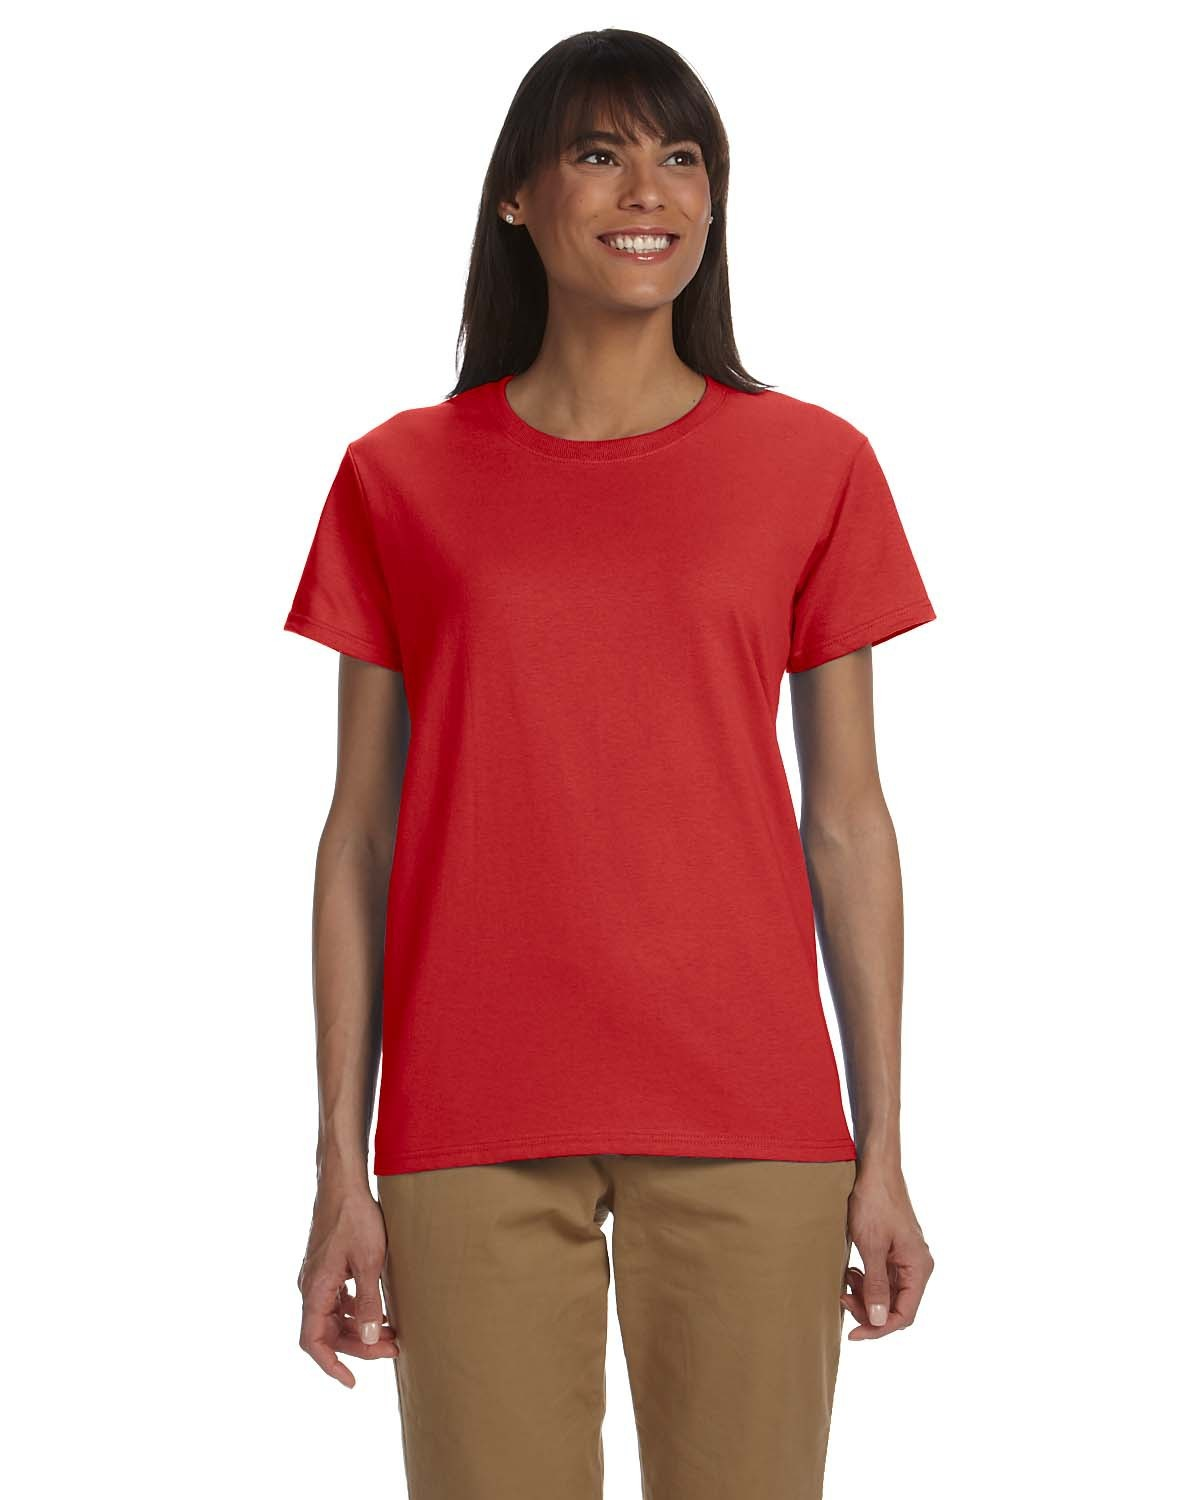 Women's Red Shirts. Showing 40 of results that match your query. Search Product Result. Product - Womens Referee Shirt Comfortable V-Neck Ref Shirt for Waitresses, Refs, Costumes Product - Rowing Crew Love Red Heart Rower Icon In Middle Women's Cotton T-Shirt. Product Image. Price $ Product Title.